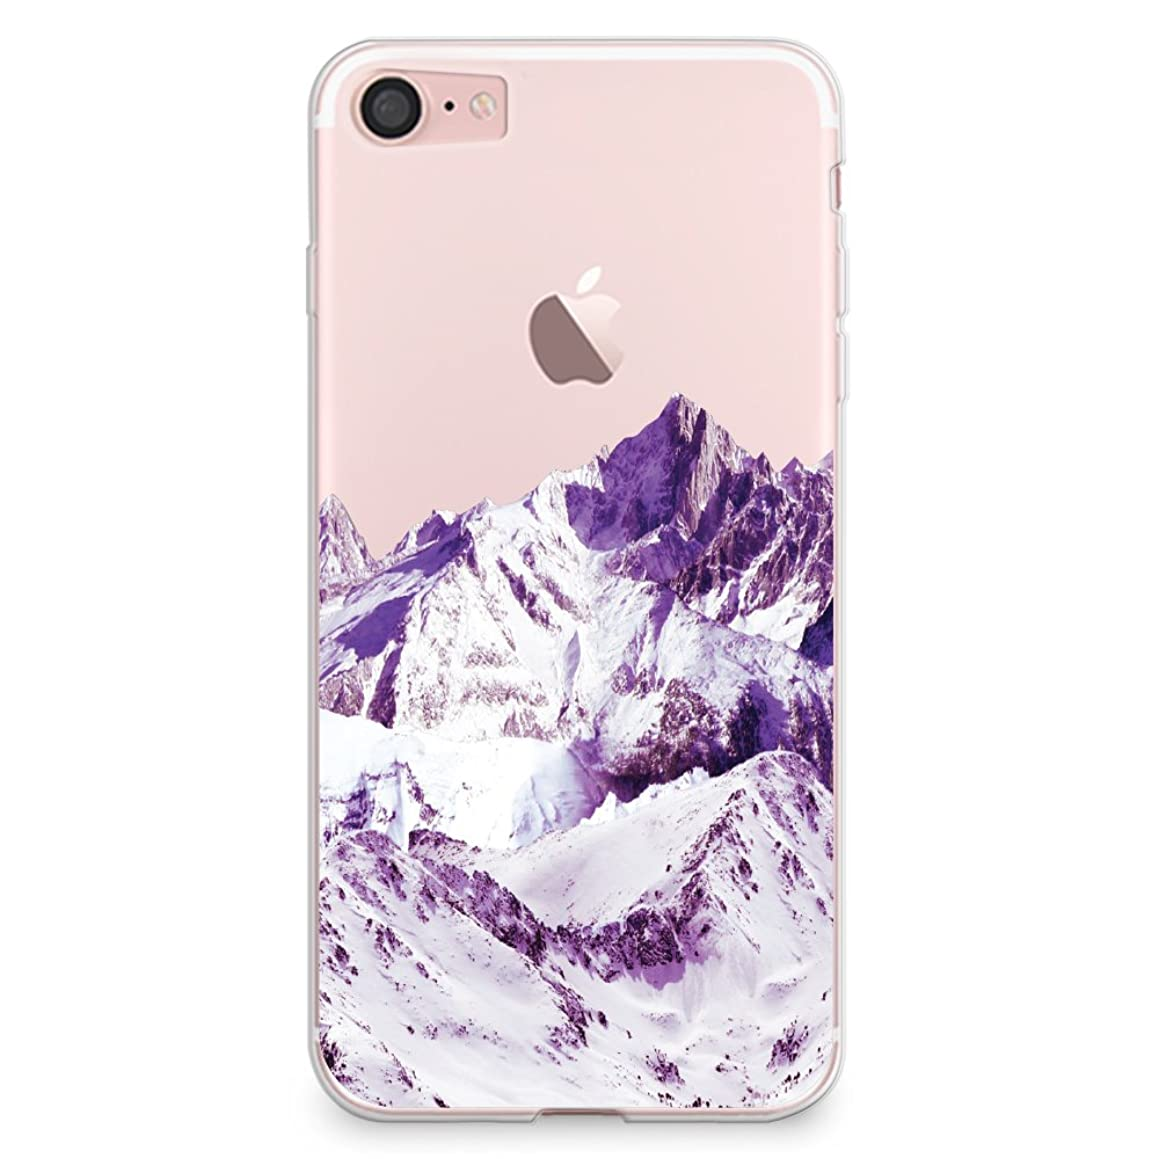 CasesByLorraine iPhone 8 Case, iPhone 7 Case, Snowy Mountain Clear Transparent Case Flexible TPU Soft Gel Protective Cover for Apple iPhone 7 & iPhone 8 (A18)